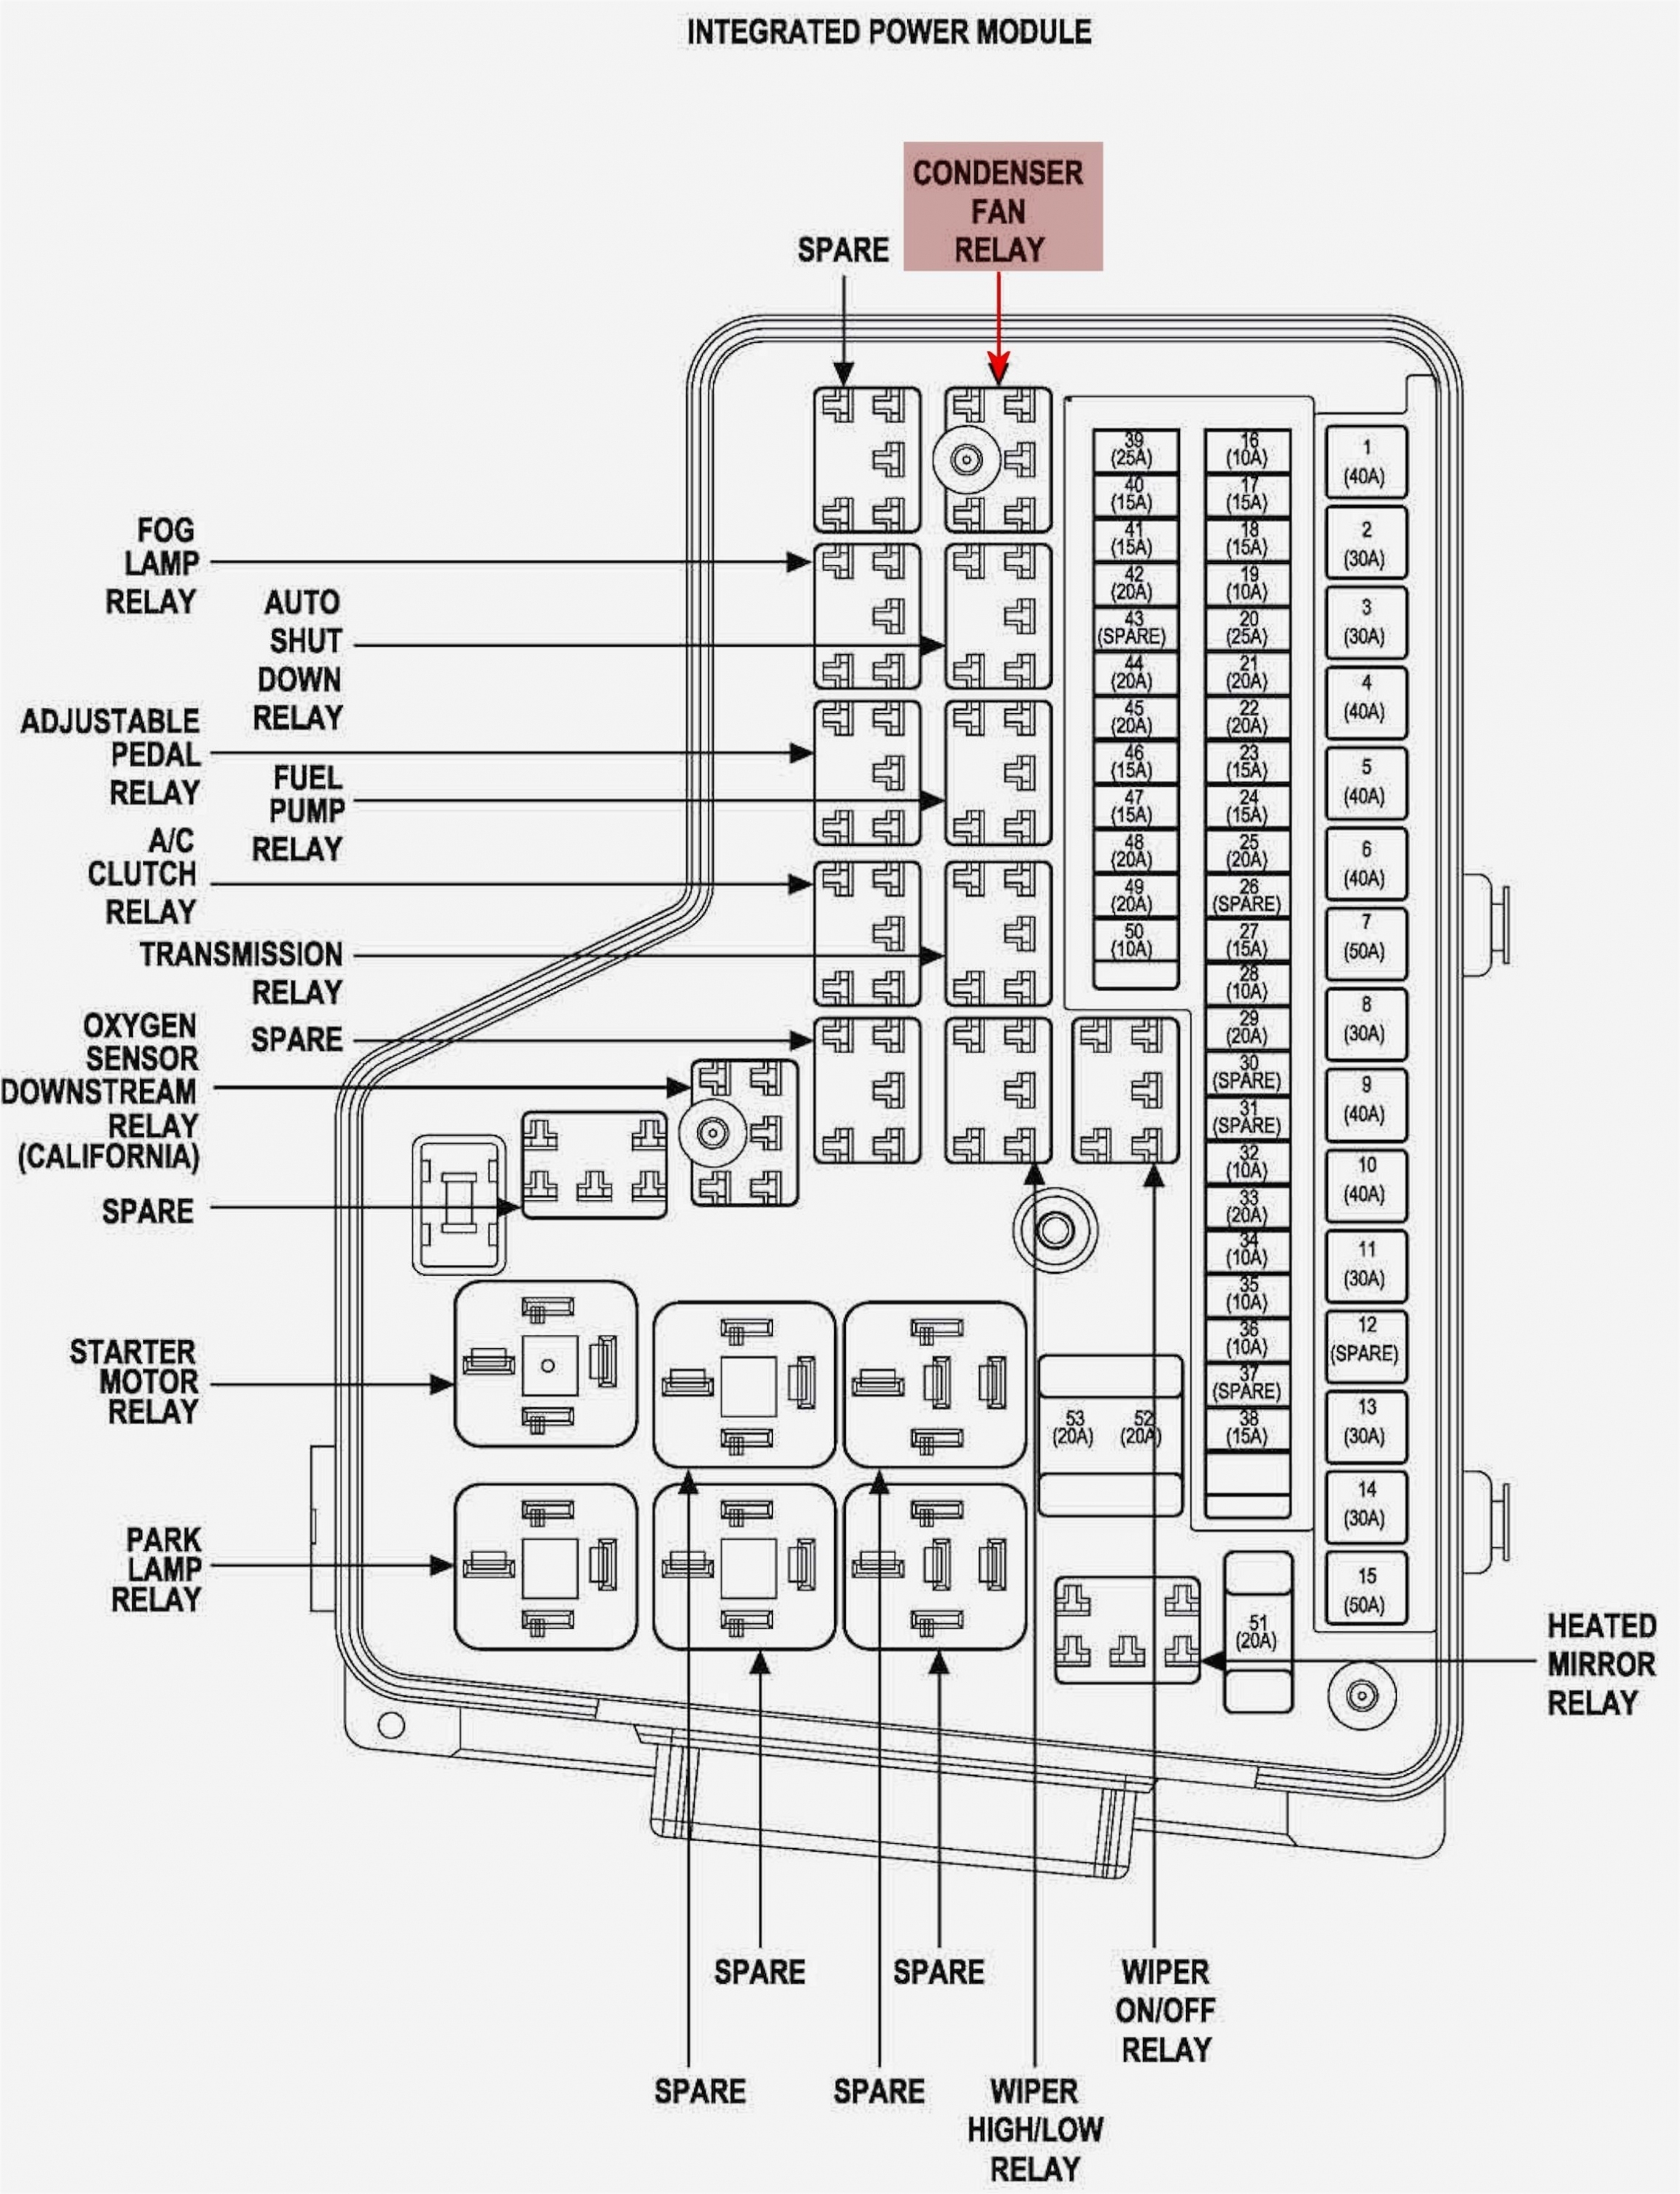 fuse box 2009 dodge grand caravan wiring diagrams the